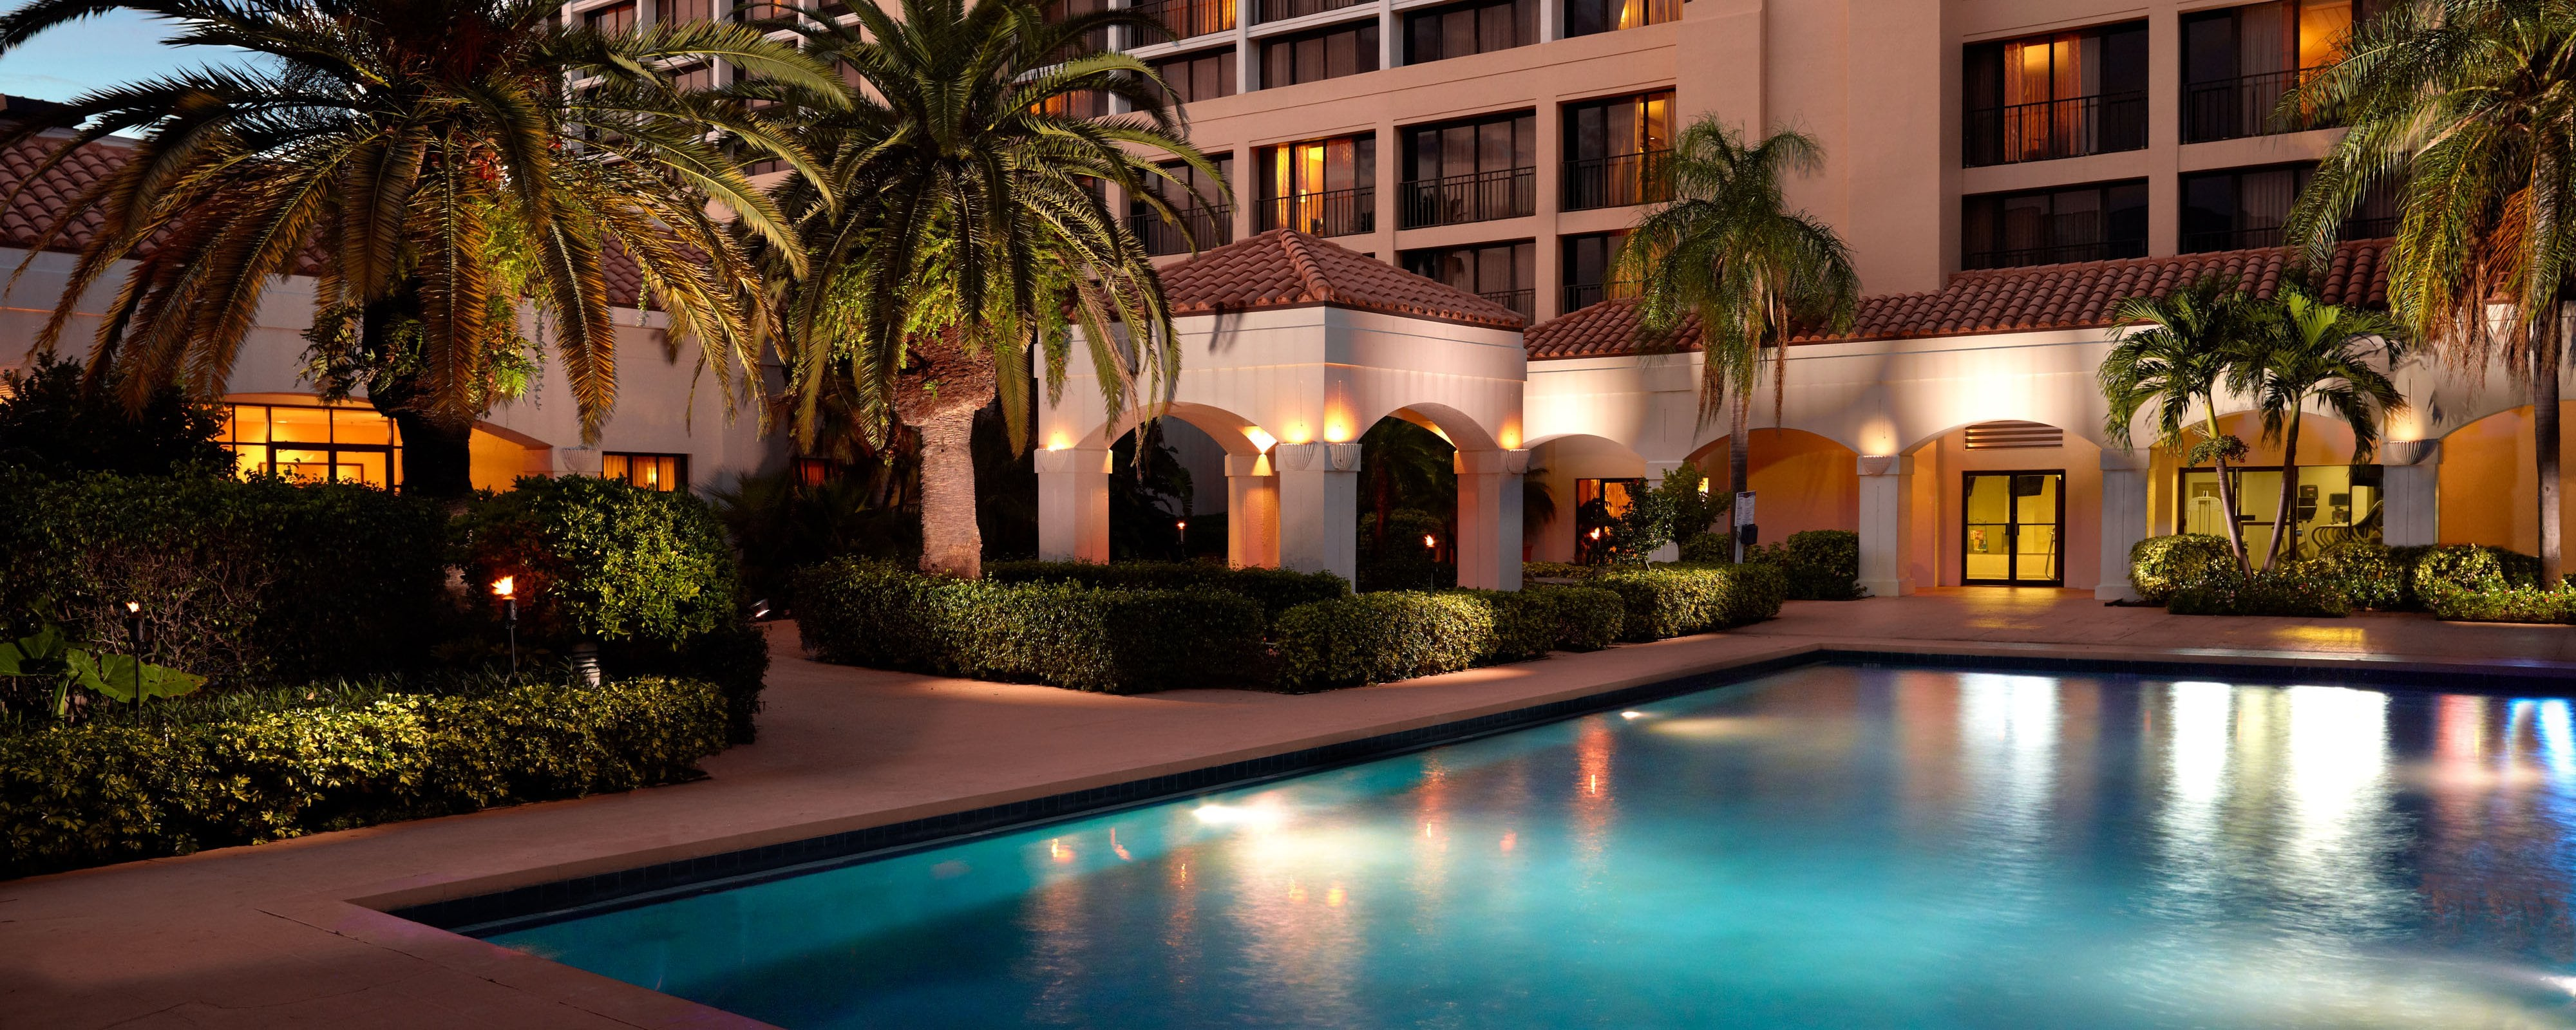 Downtown Palm Beach Gardens Hotel | Palm Beach Gardens Marriott